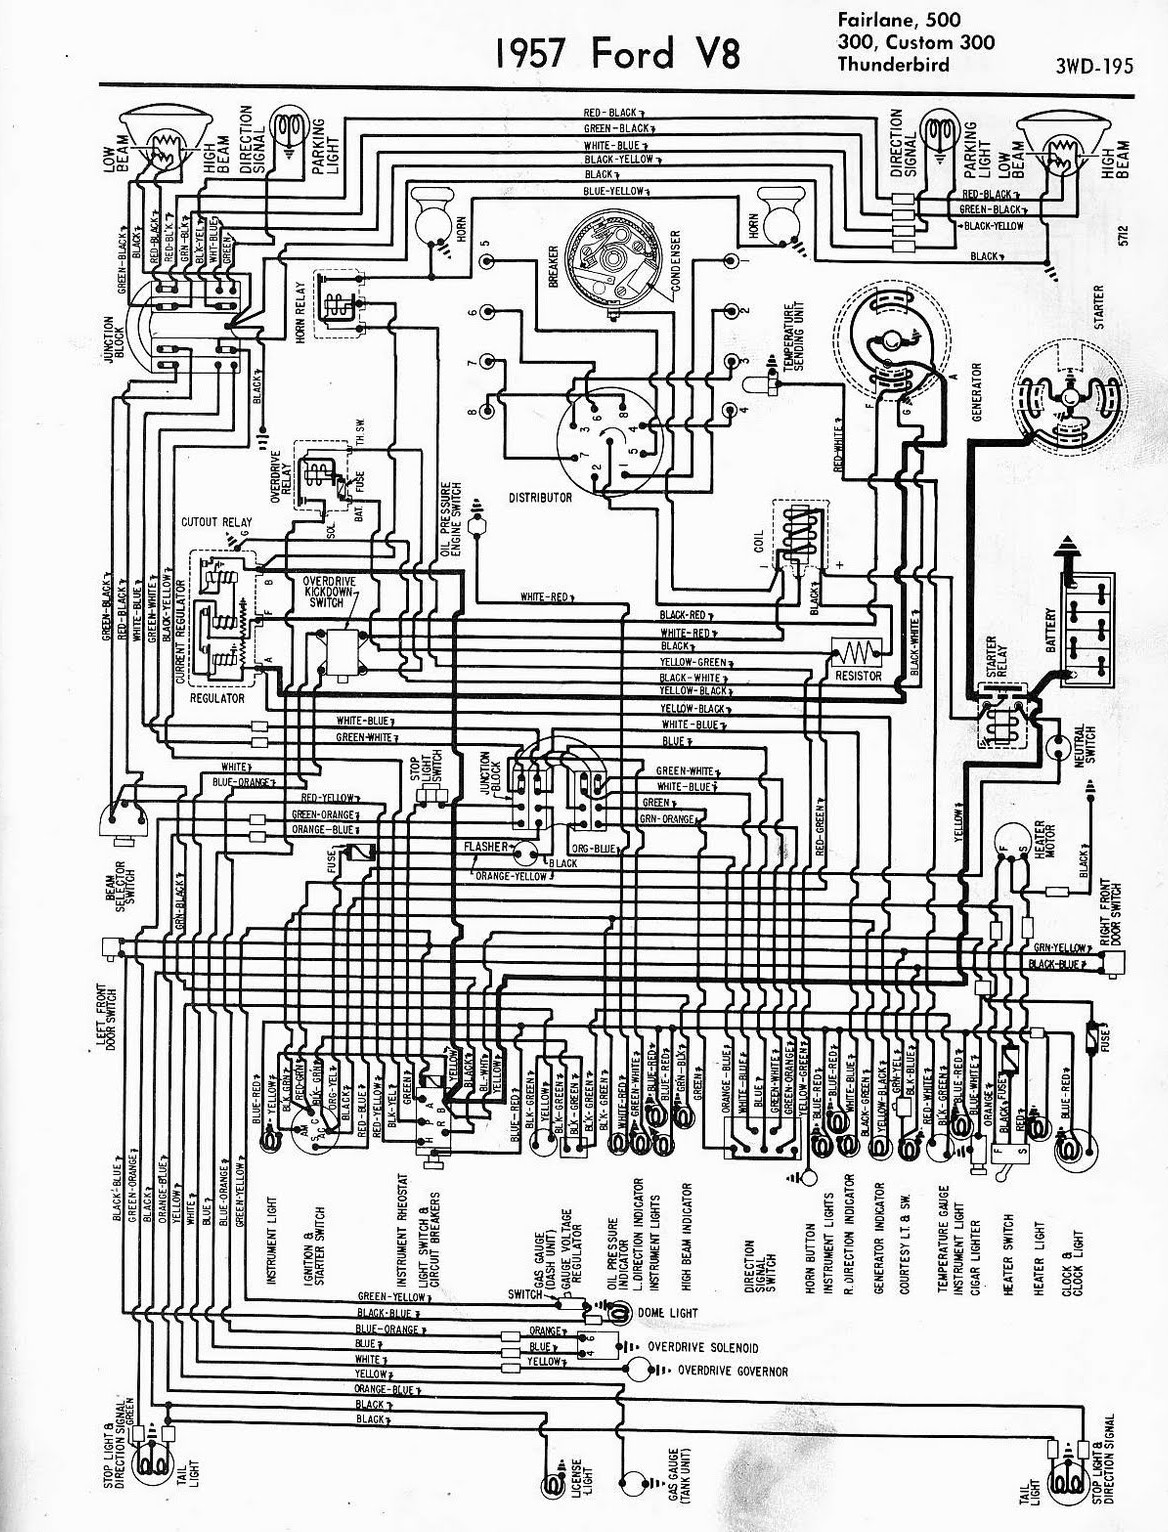 small resolution of wiring diagrams of 1960 ford v8 thunderbird today wiring diagram1962 thunderbird fuse diagram wiring diagram schema